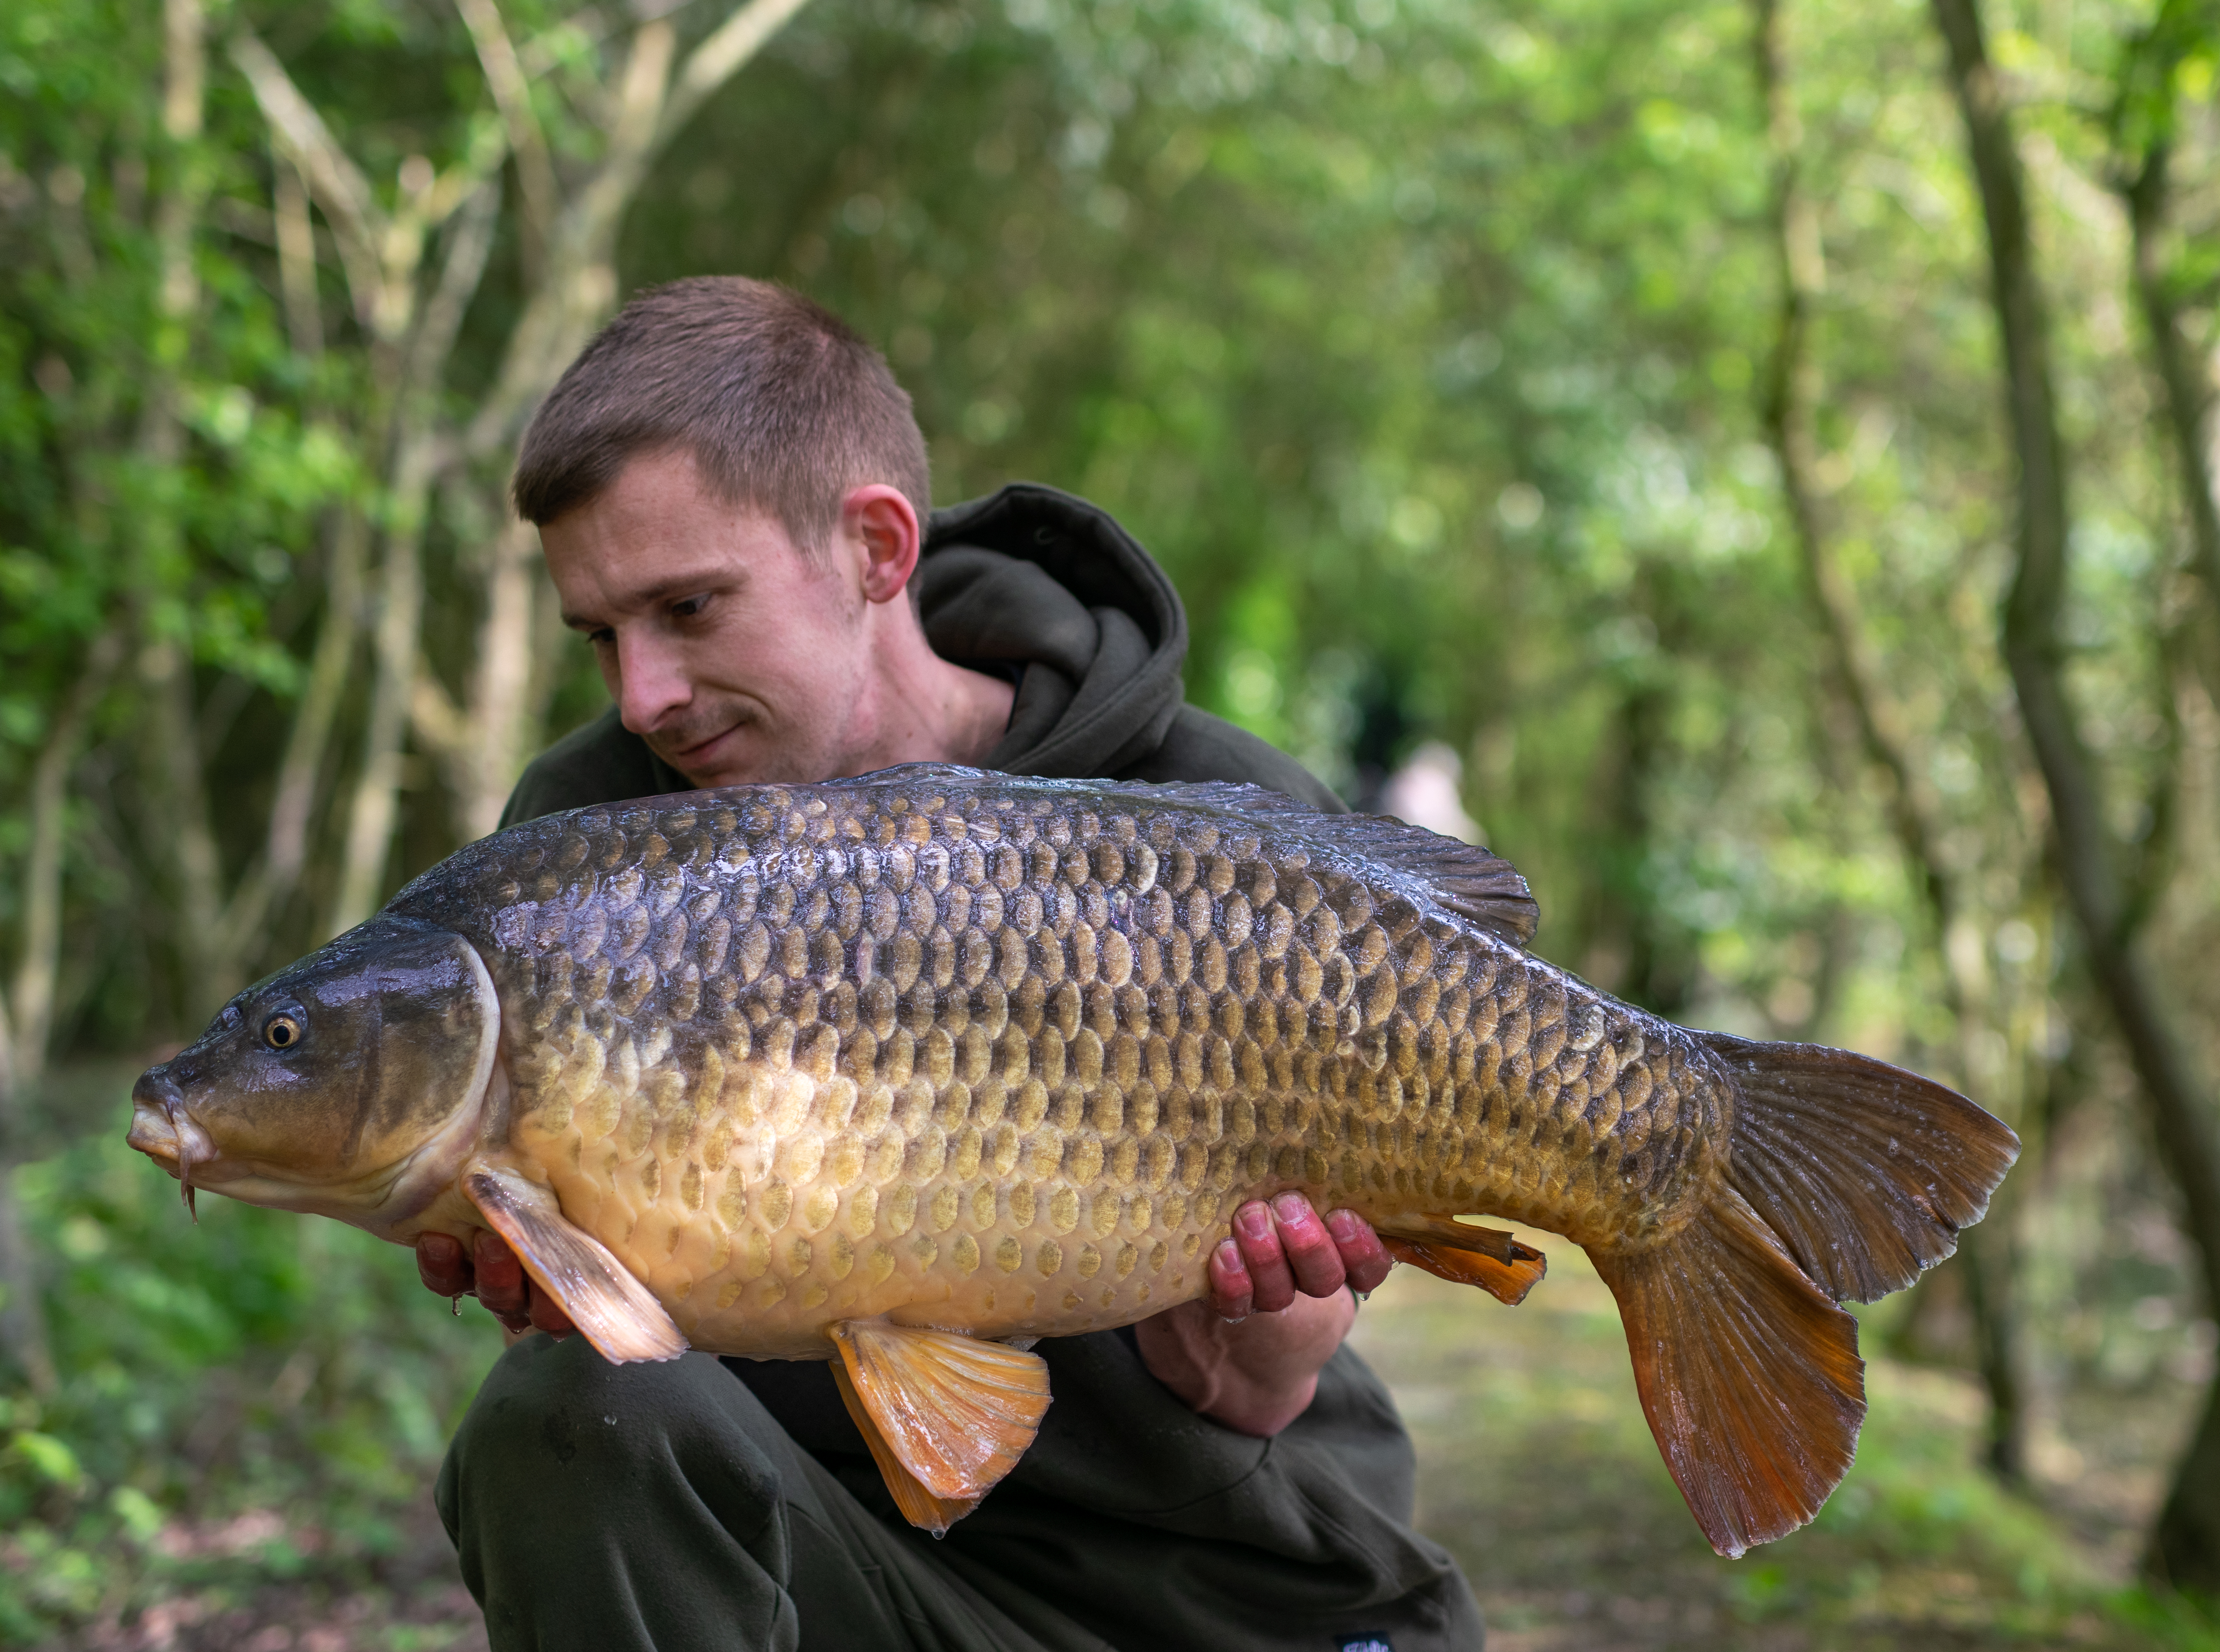 Jack with a Spring Common Carp